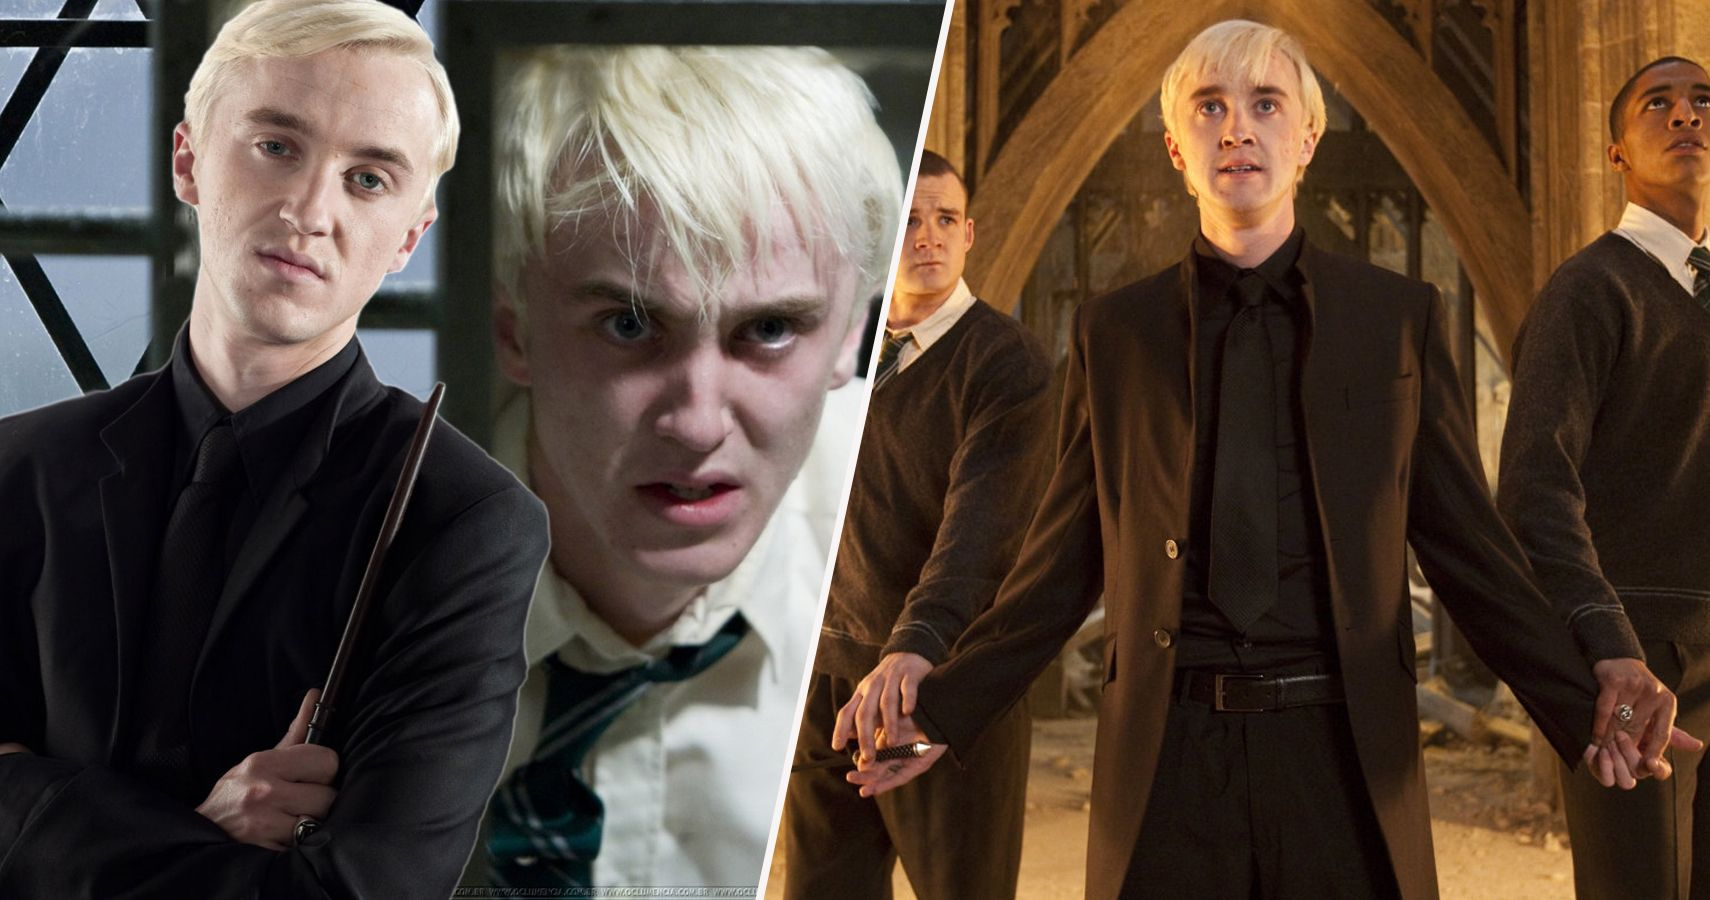 Harry Potter: 20 Things Wrong With Draco Malfoy We All Choose To Ignore